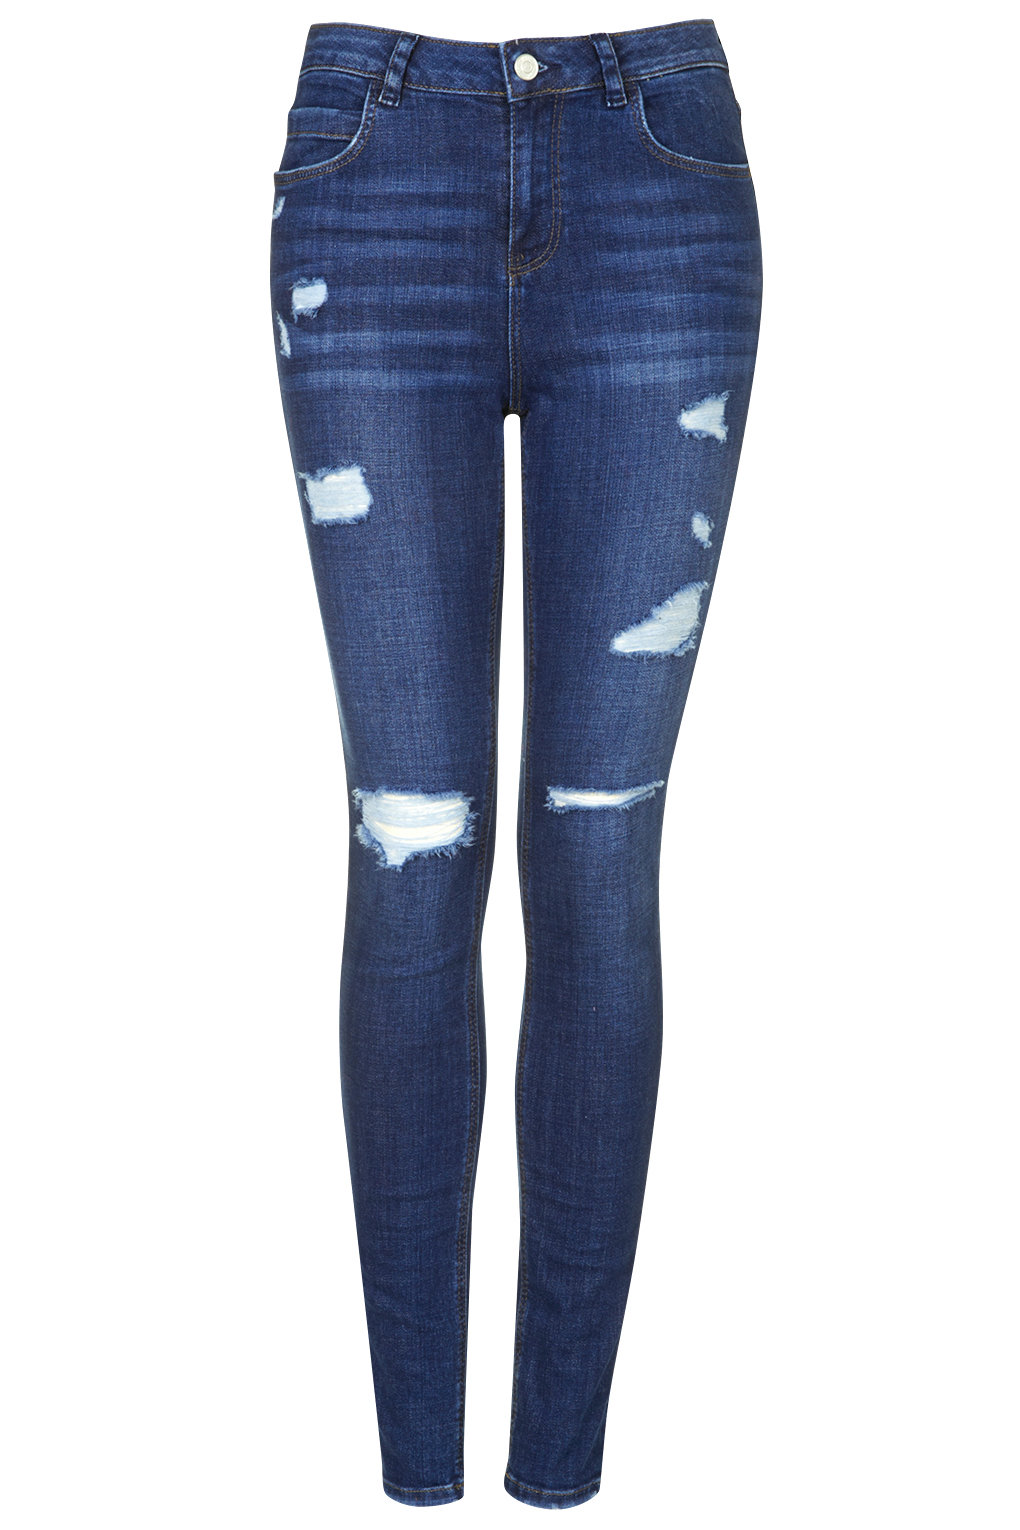 MOTO Ripped Skinny Jeans - Petite - Clothing